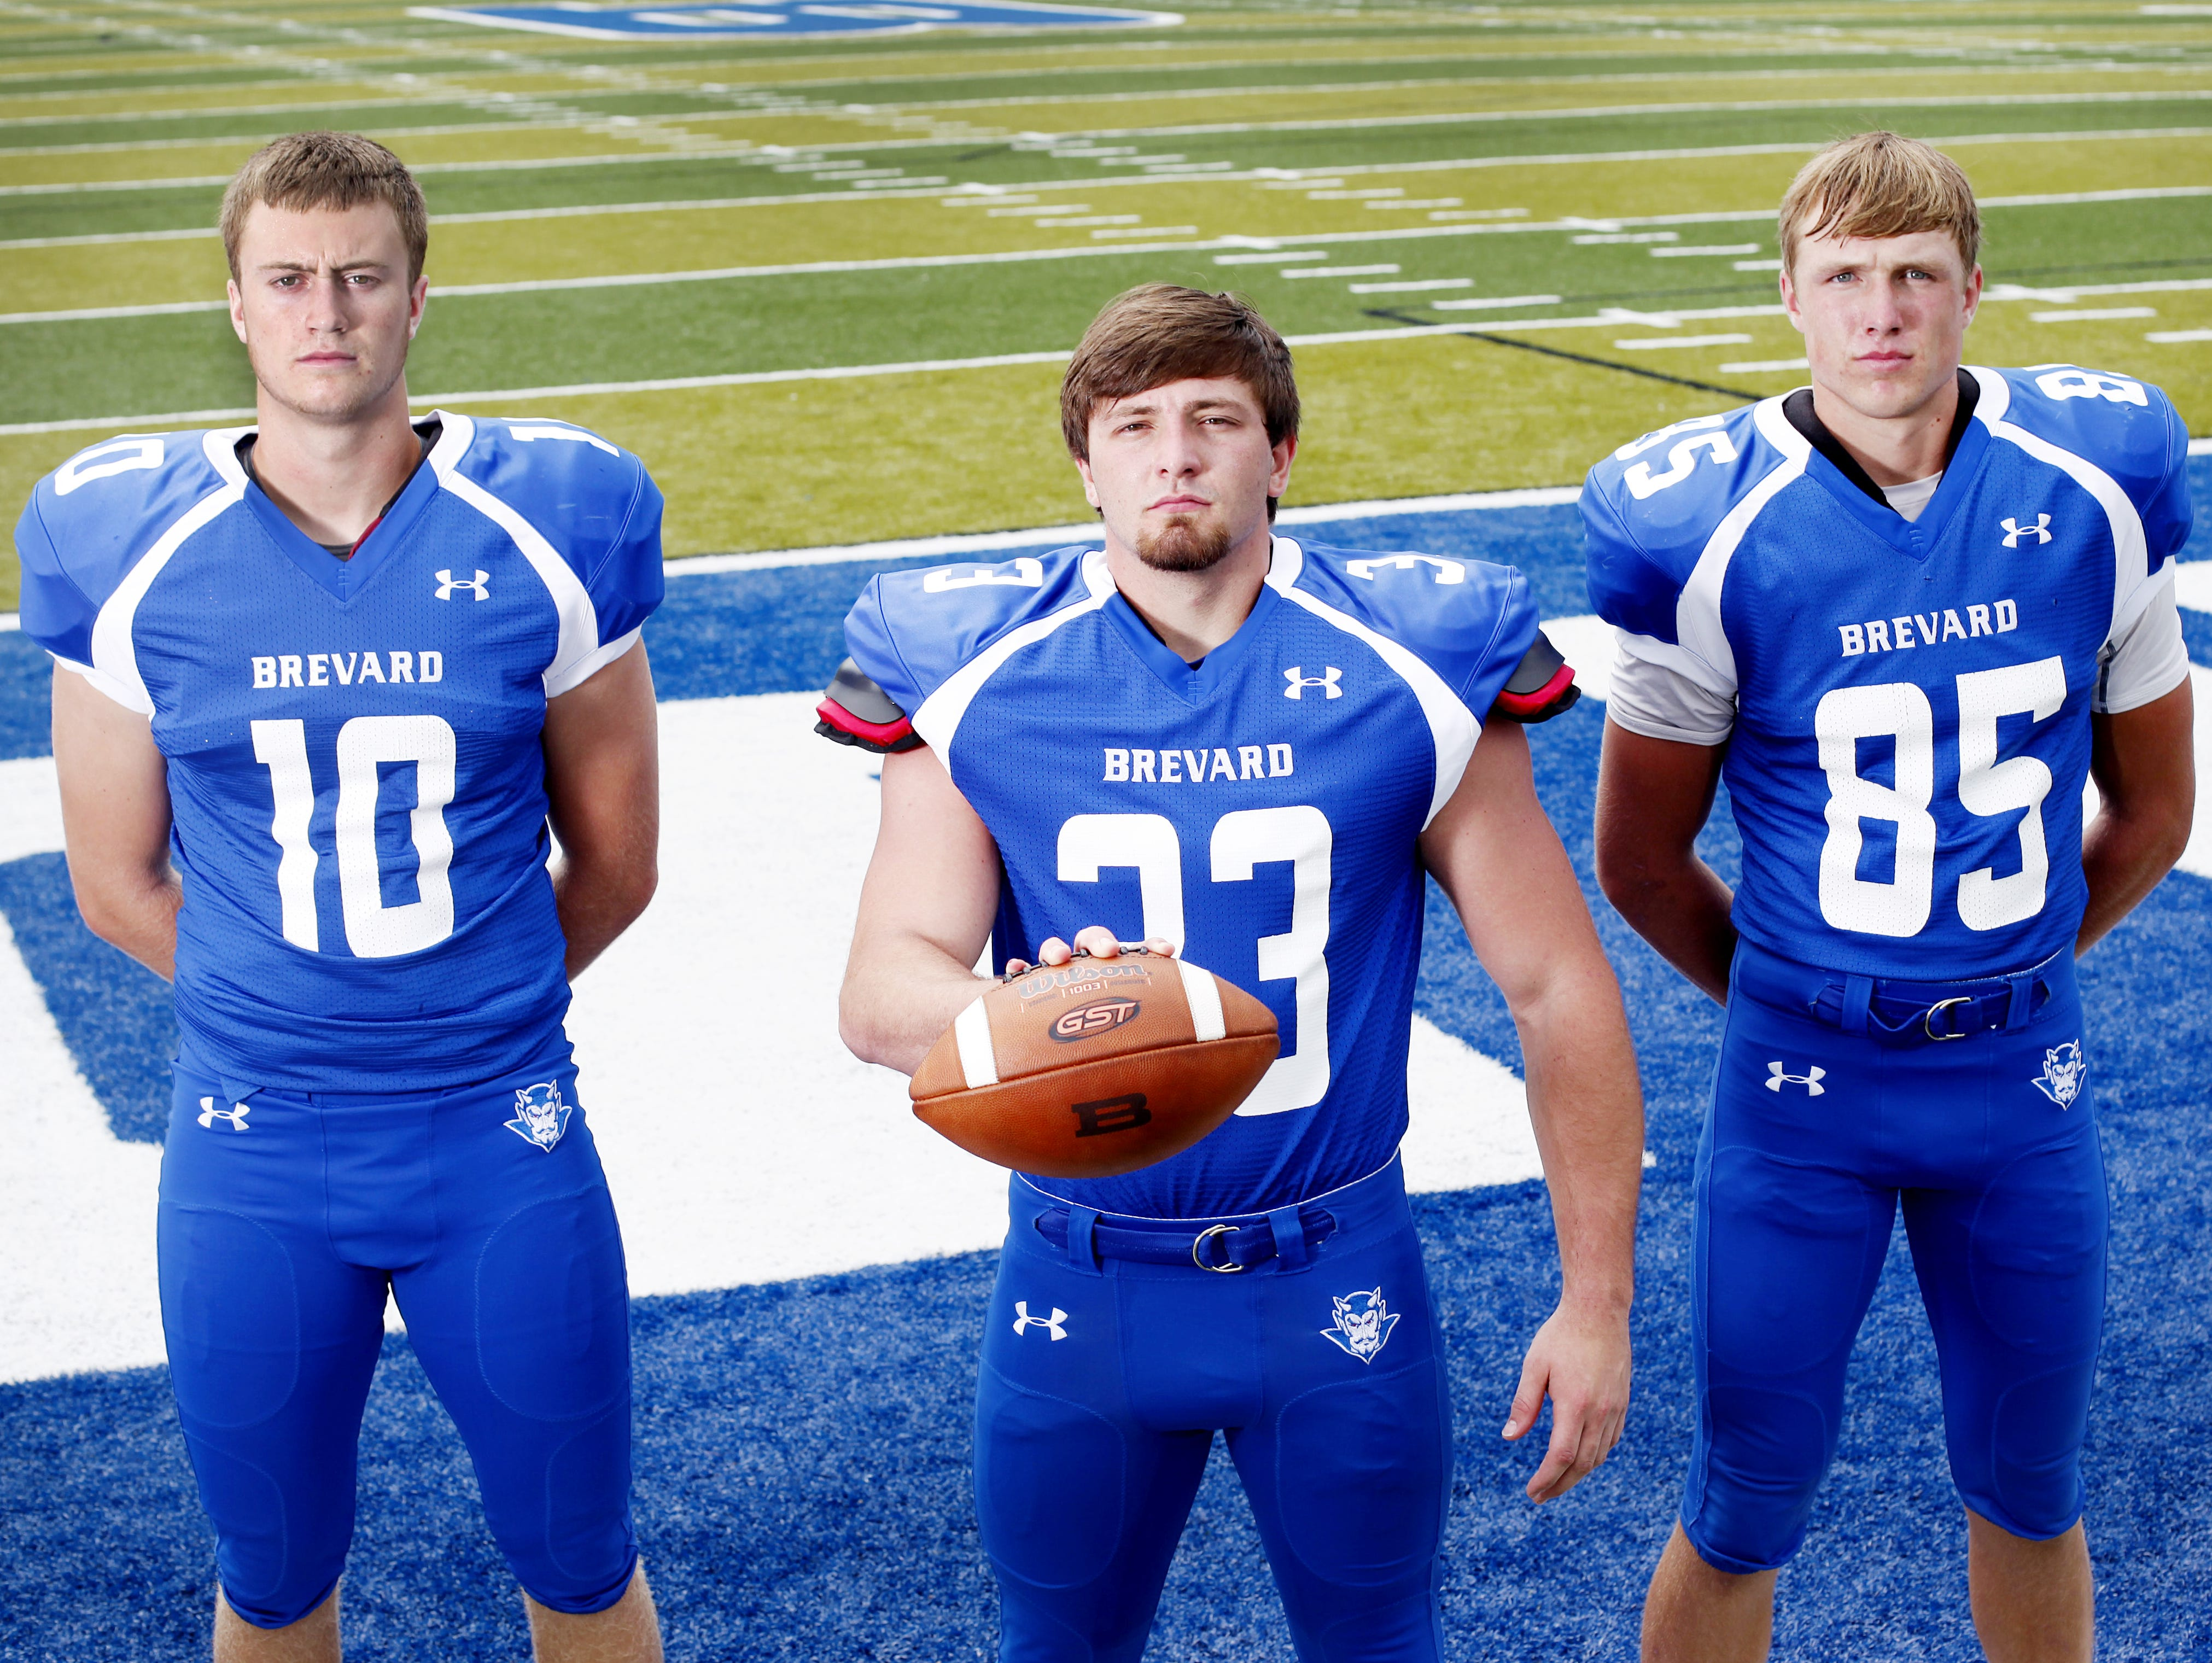 Brevard football players, from left to right, Tanner Ellenberger, Tanner Pettit and Nick Cabe.